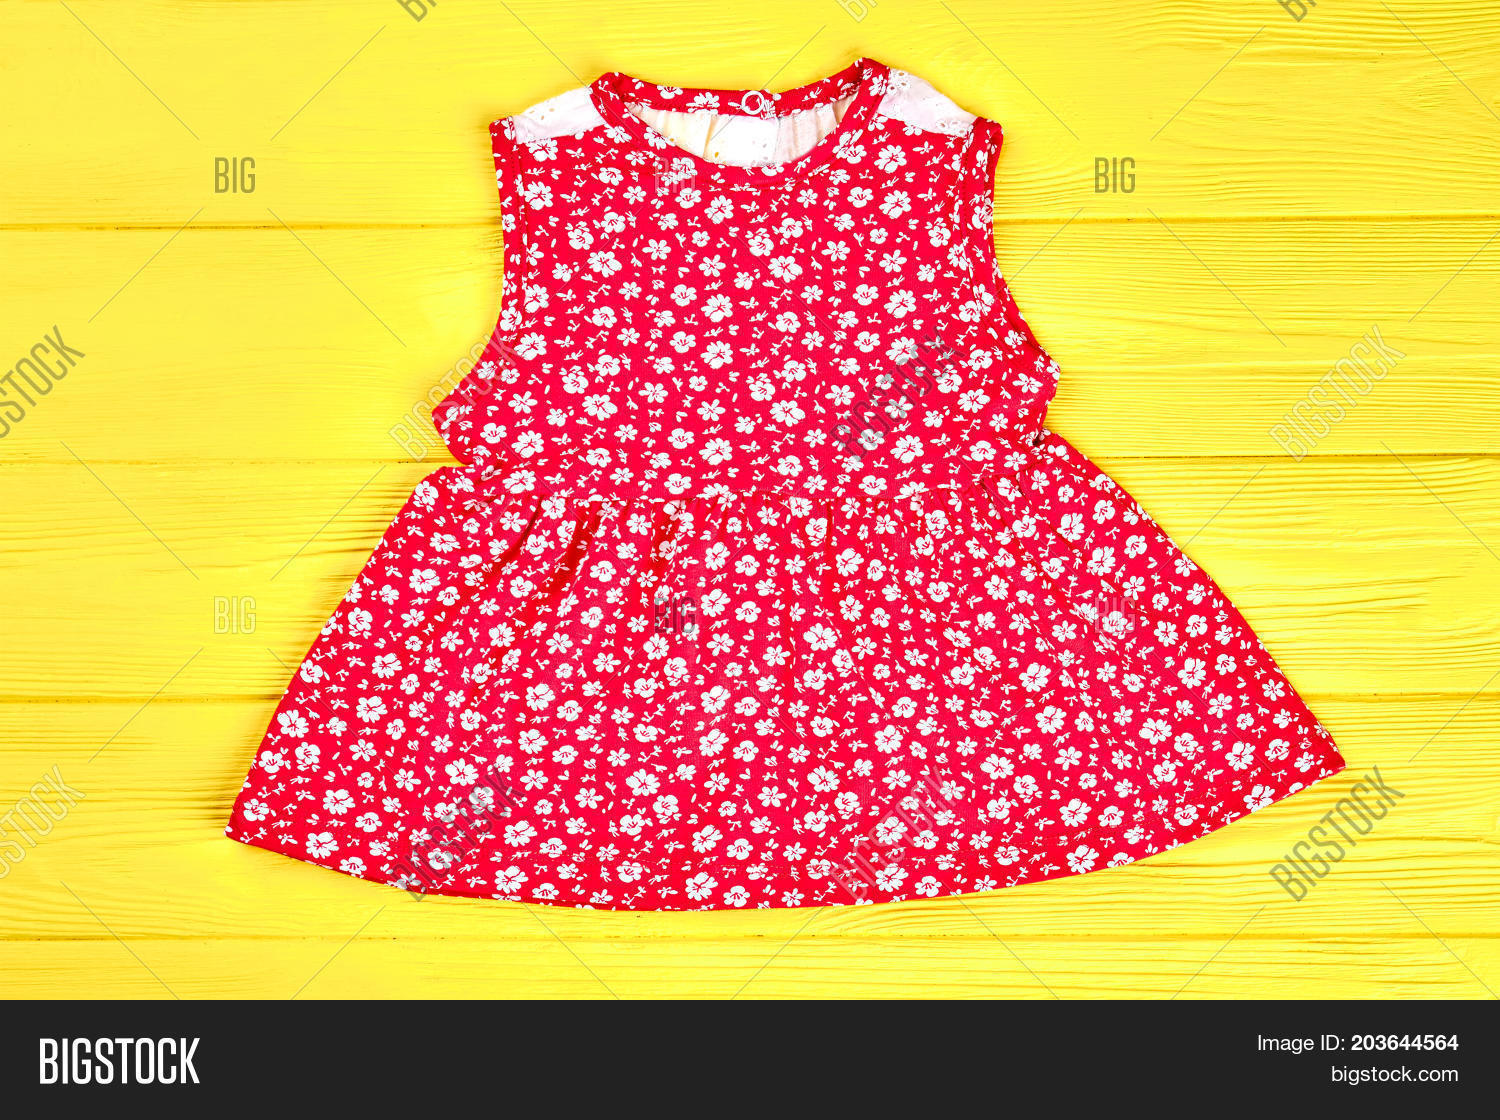 4dfcec1ed5264 Little girls red patterned top. Baby-girl red natural printed dress on  yellow wooden